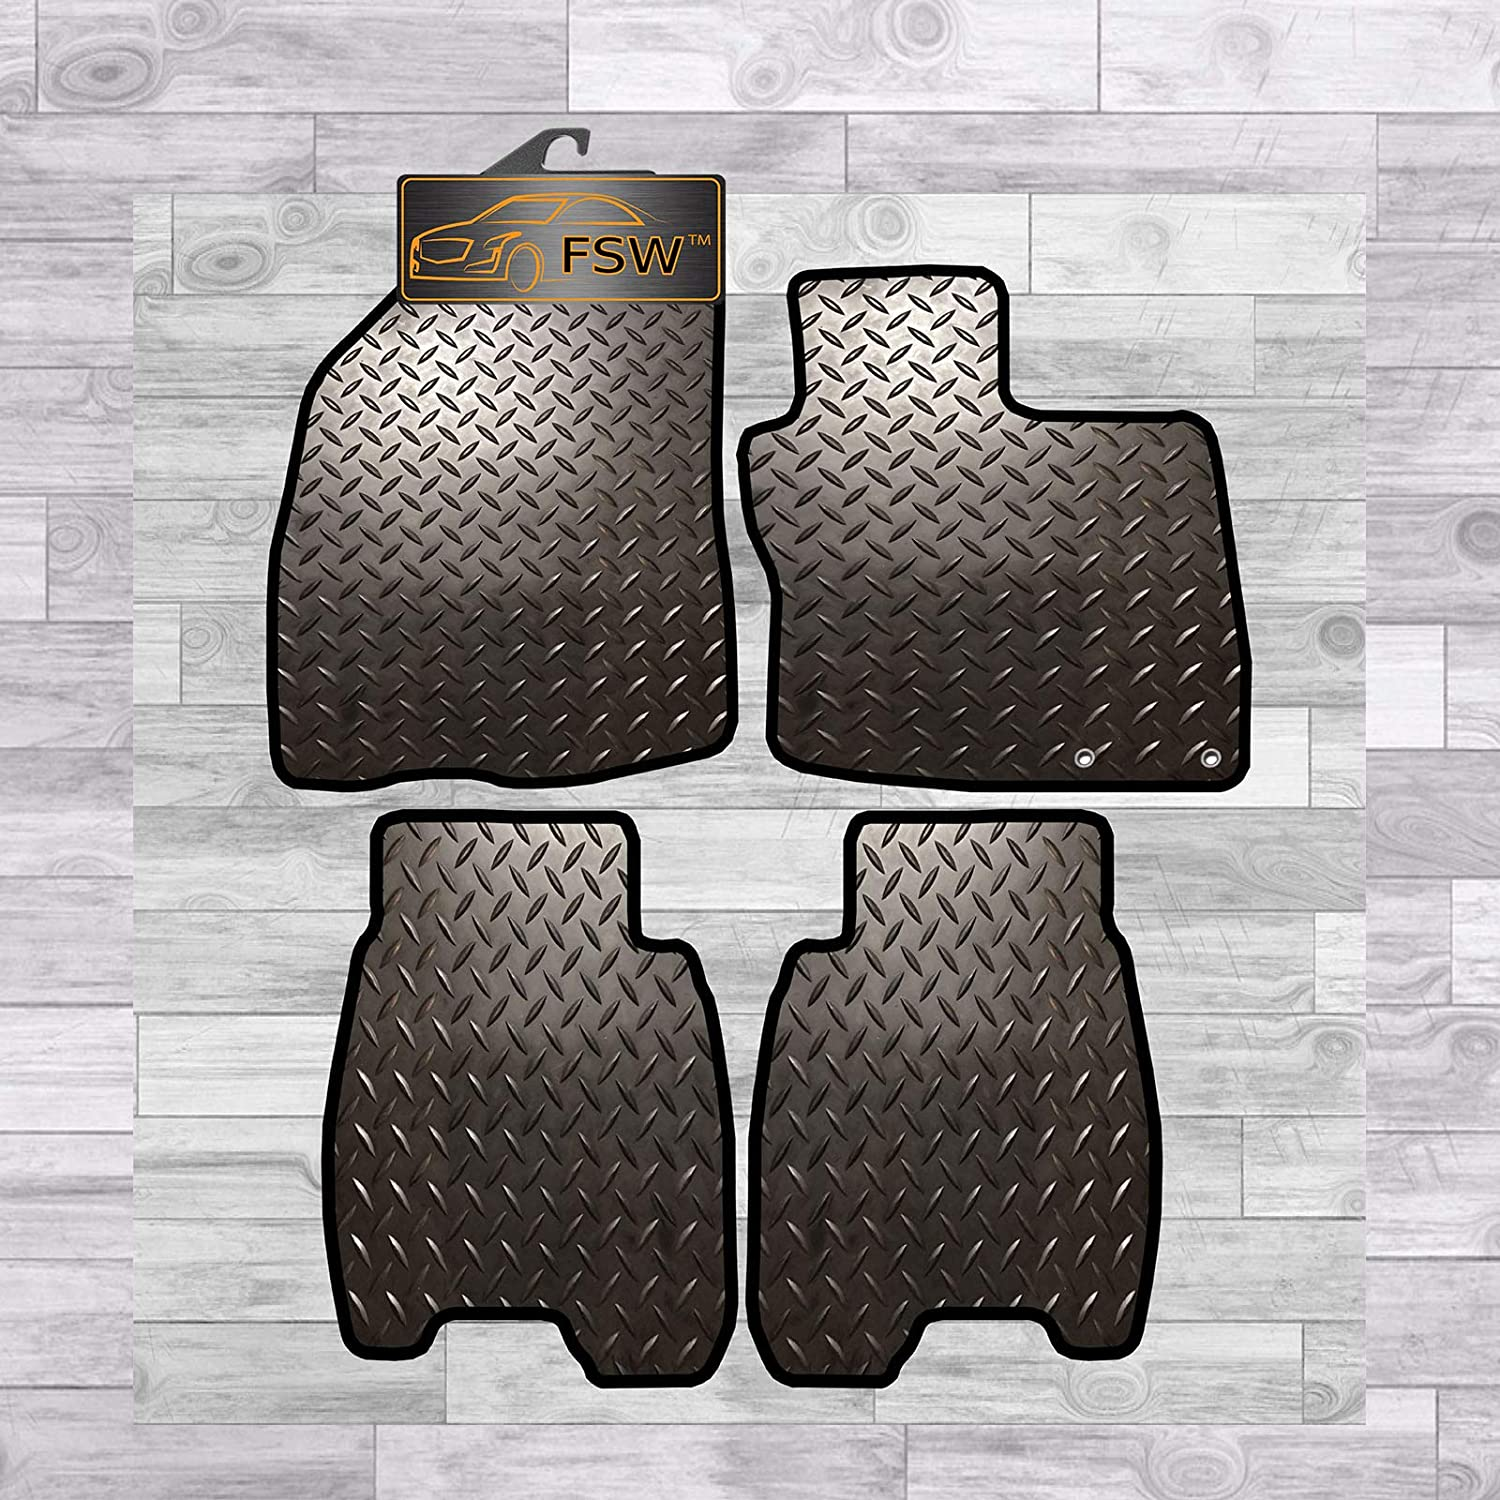 FSW Civic 2008-2012 3//5 Dr Clips Tailored 3MM Waterproof Rubber Heavy Duty Car Floor Mats